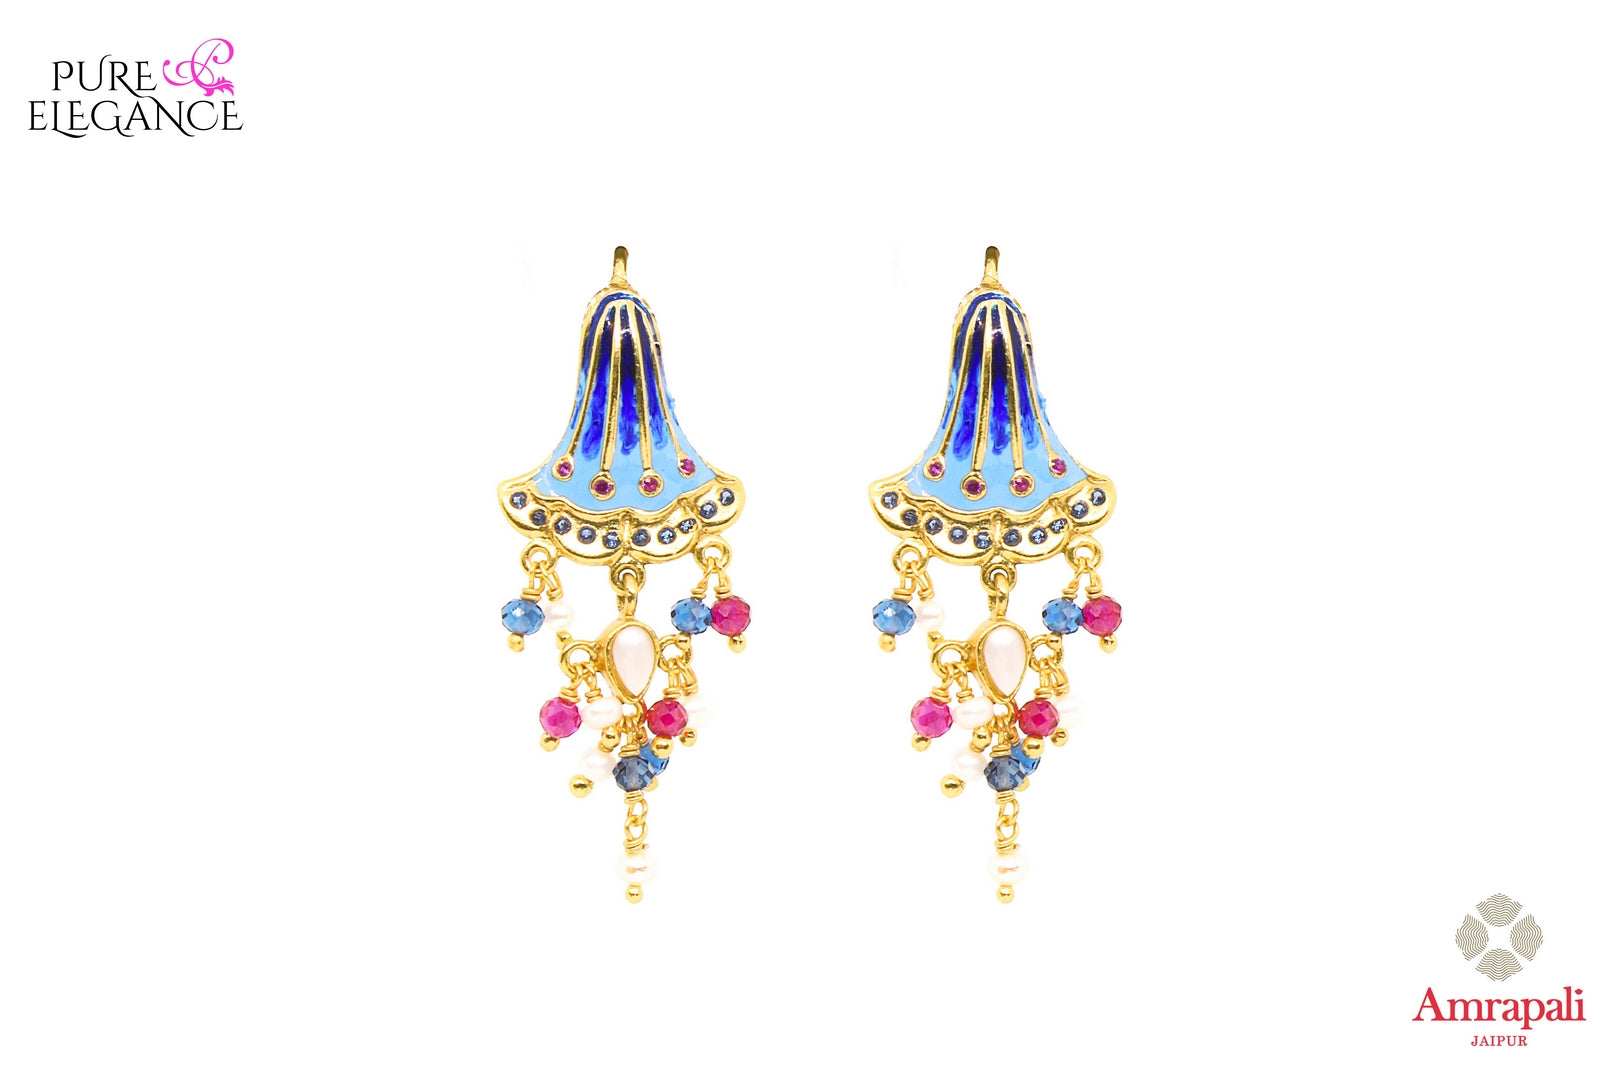 Buy Amrapali silver gold plated enamel blue bell earrings online in USA. If you are looking for Indian jewelry in USA, then Pure Elegance Indian fashion store is the place for you. A whole range of exquisite silver gold plated earrings, necklaces is waiting for you on our shelves, you can also opt to shop online.-front view